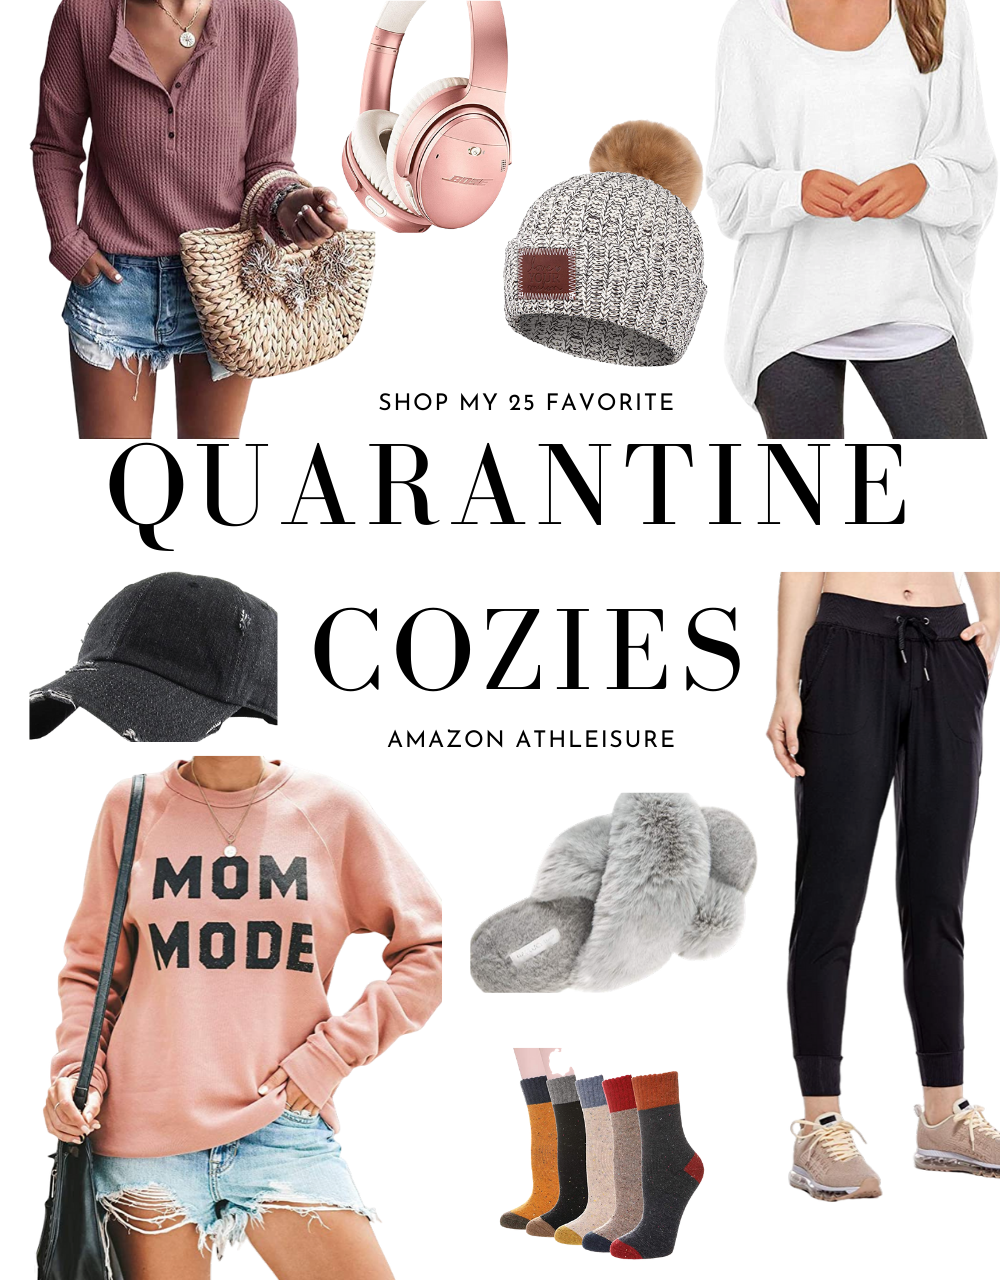 Athleisure at Home Best Quarantine Clothes